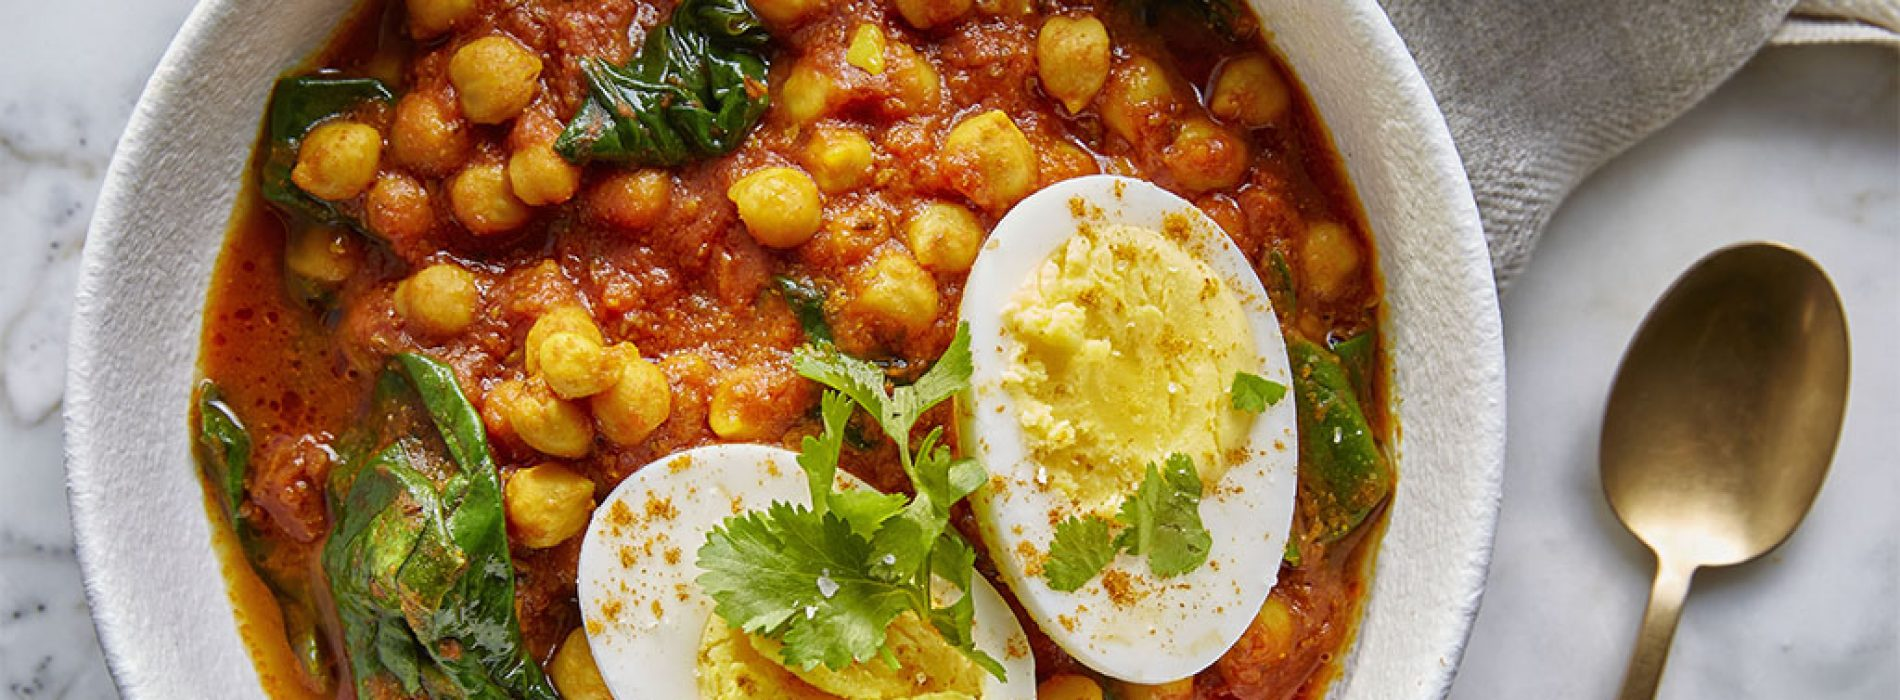 Chickpea, Egg and Spinach Curry